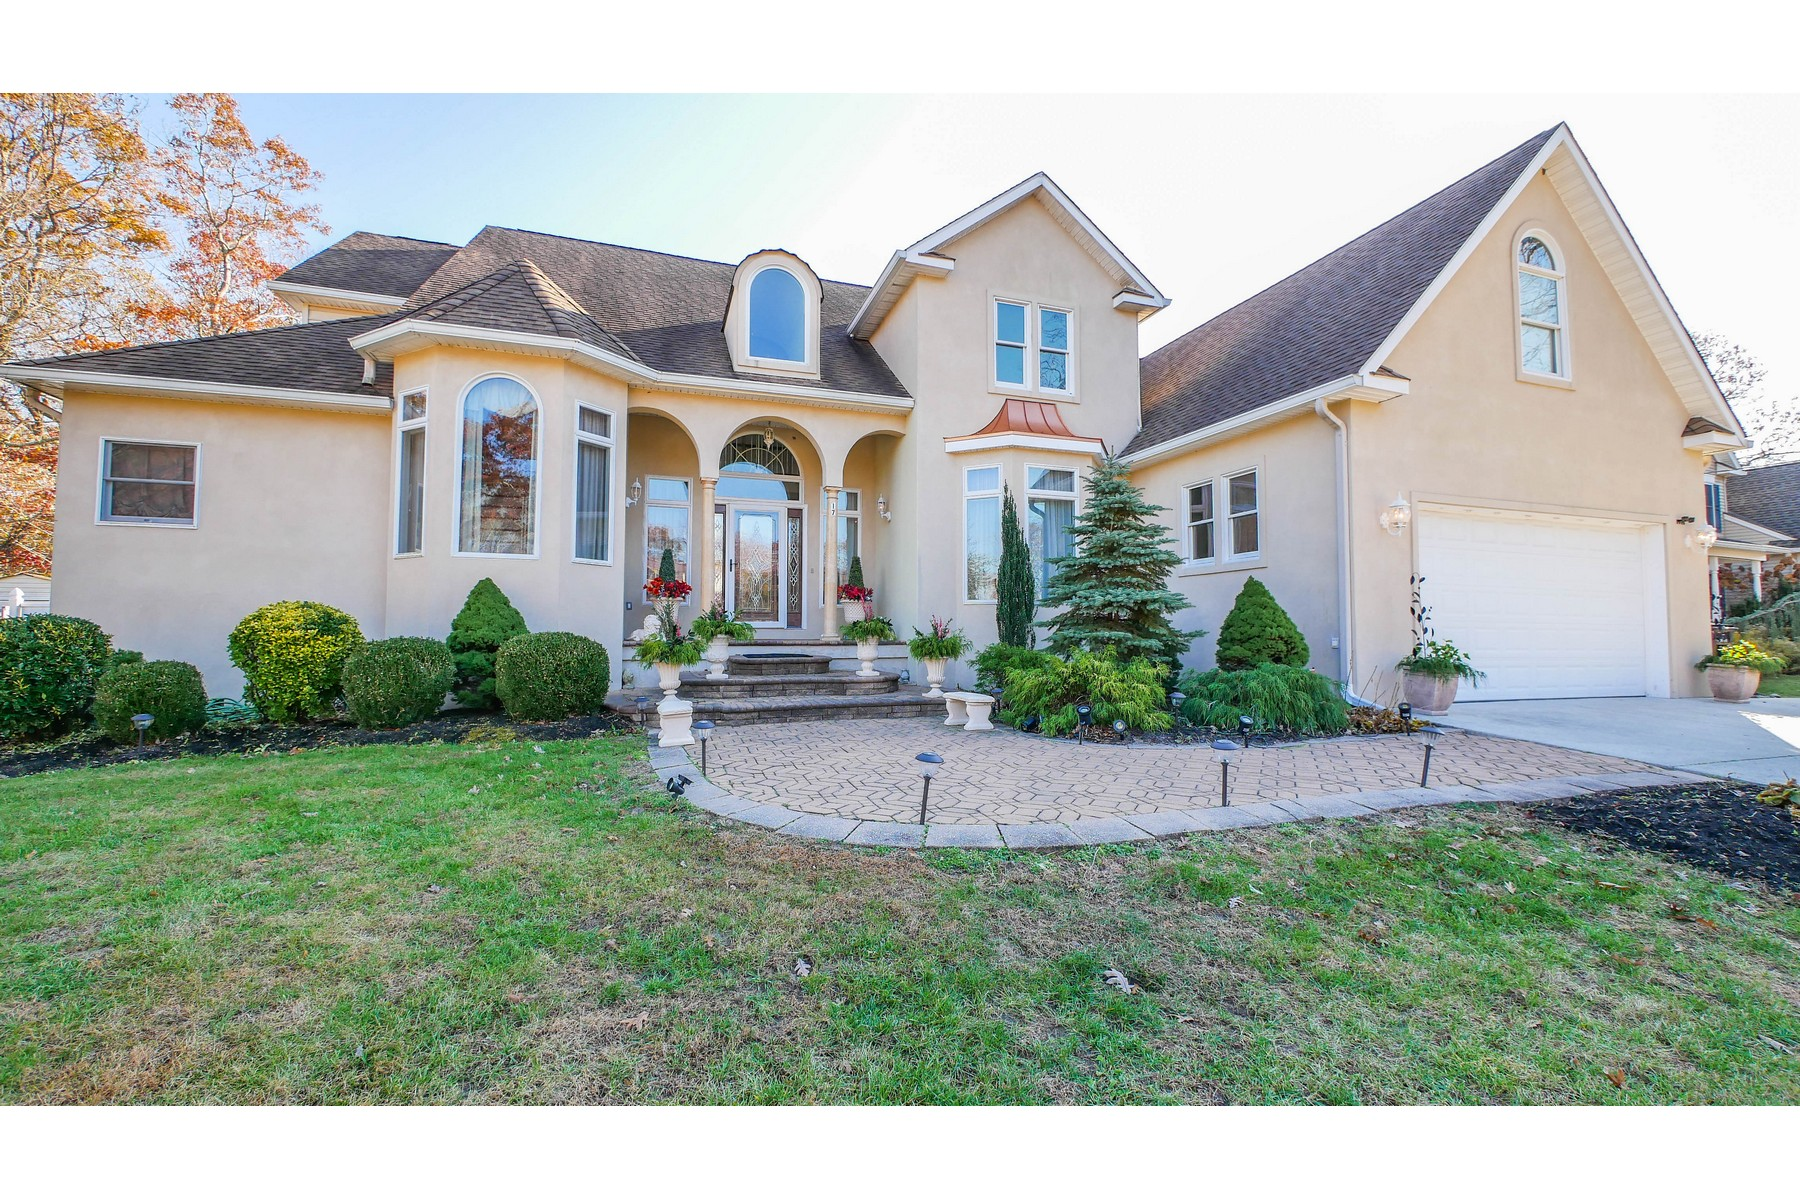 Single Family Homes for Sale at Custom Built Executive Home 17 Oak Street Marmora, New Jersey 08223 United States